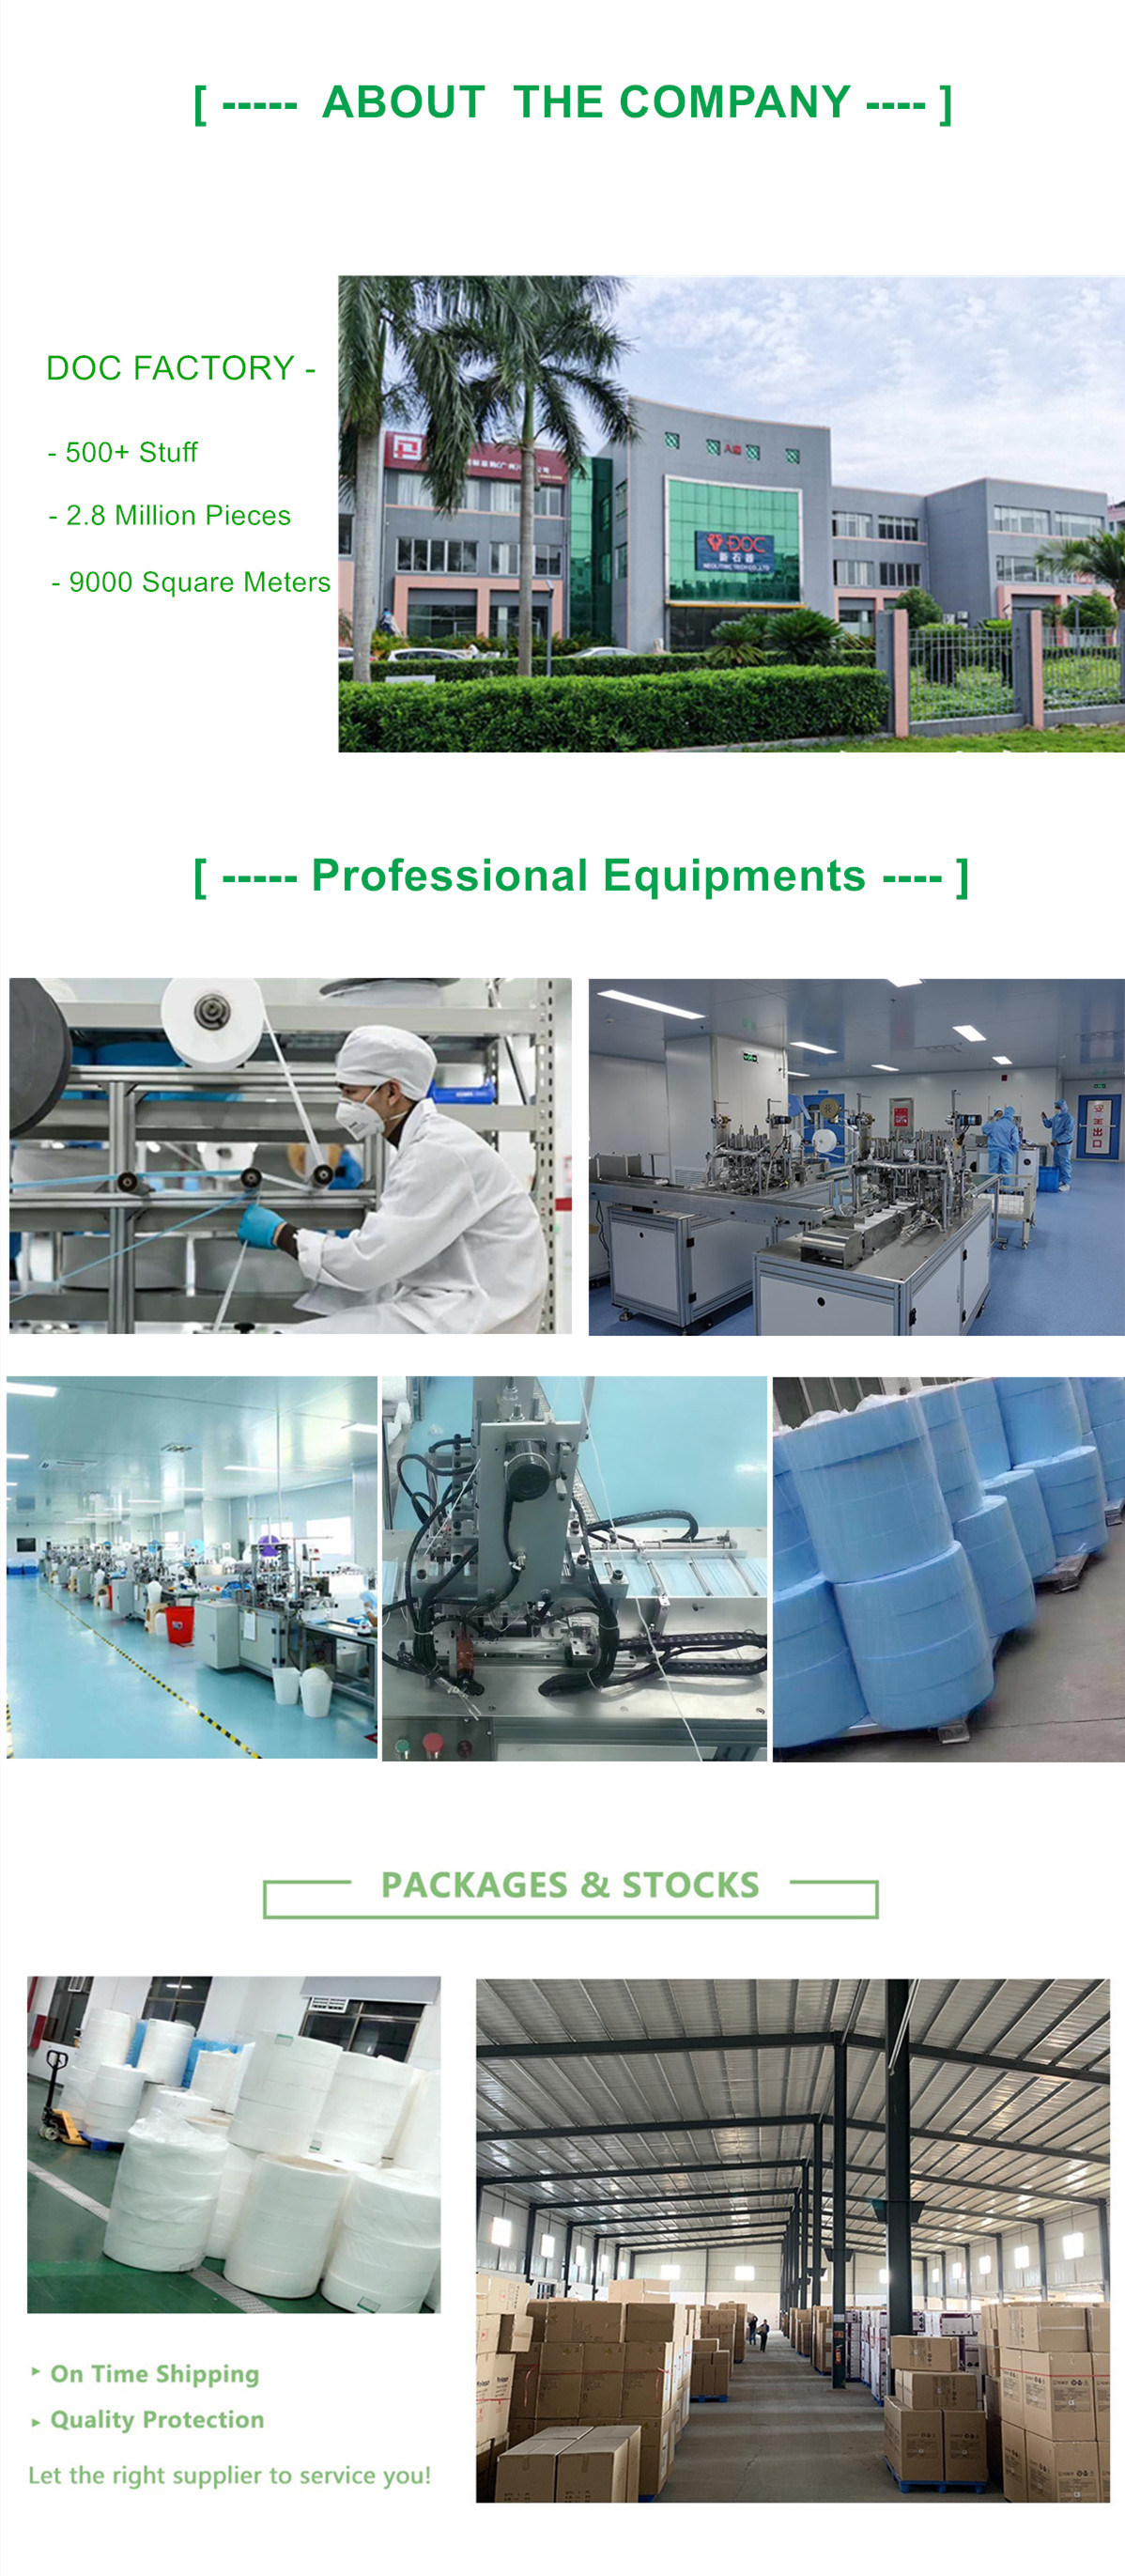 Stocken Dust Masks Factory Fast Delivery N95 KN95 FFP2 N99 Face Mask with Ce Tga Mdel Verifiable Certificates